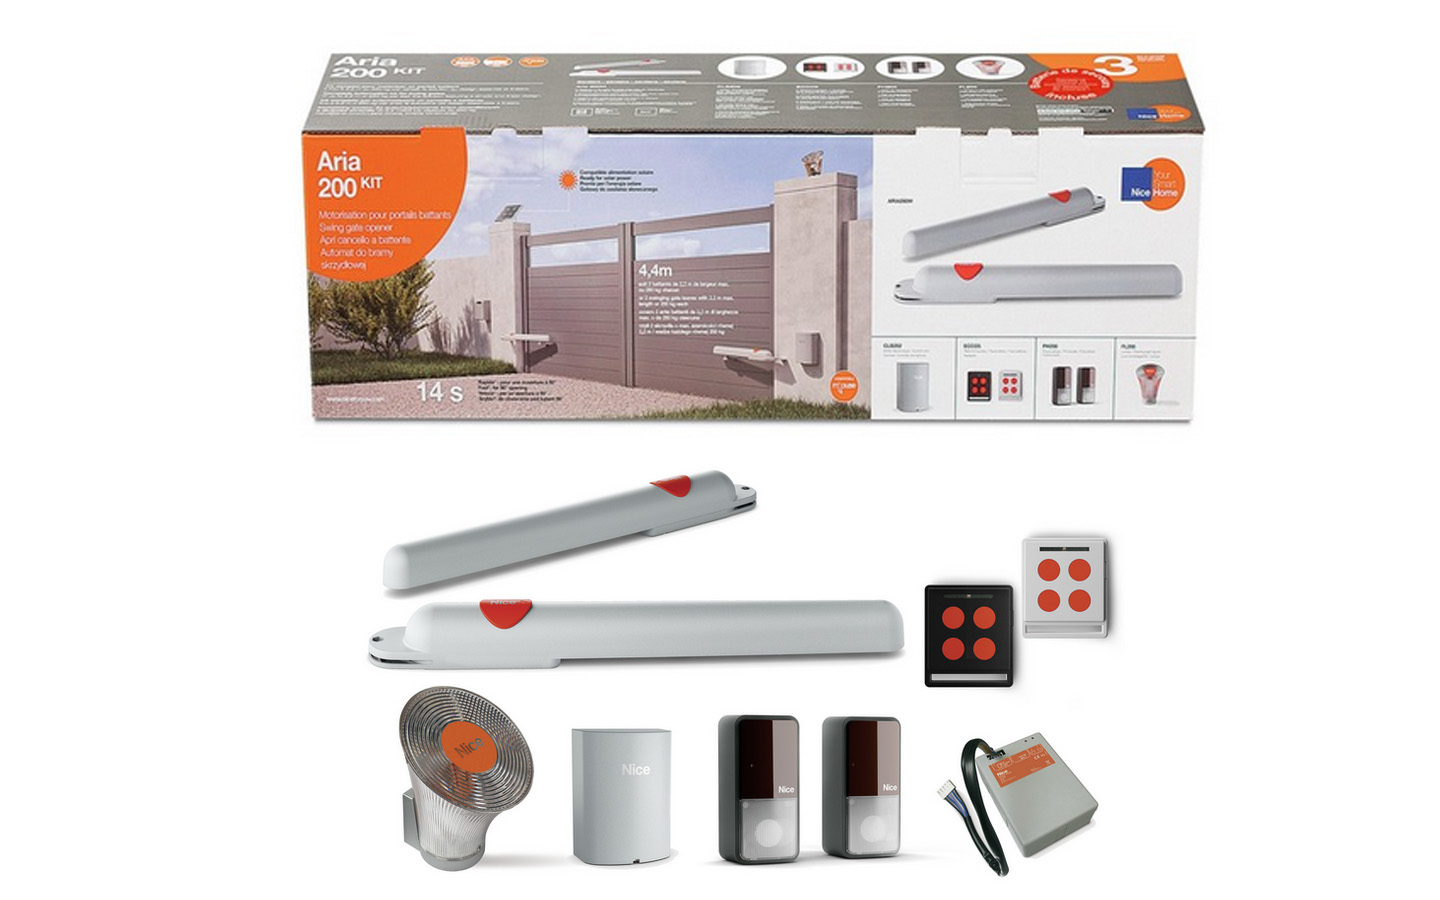 KIT OUVERTURE PORTAIL VERIN NICE HOME ARIA400